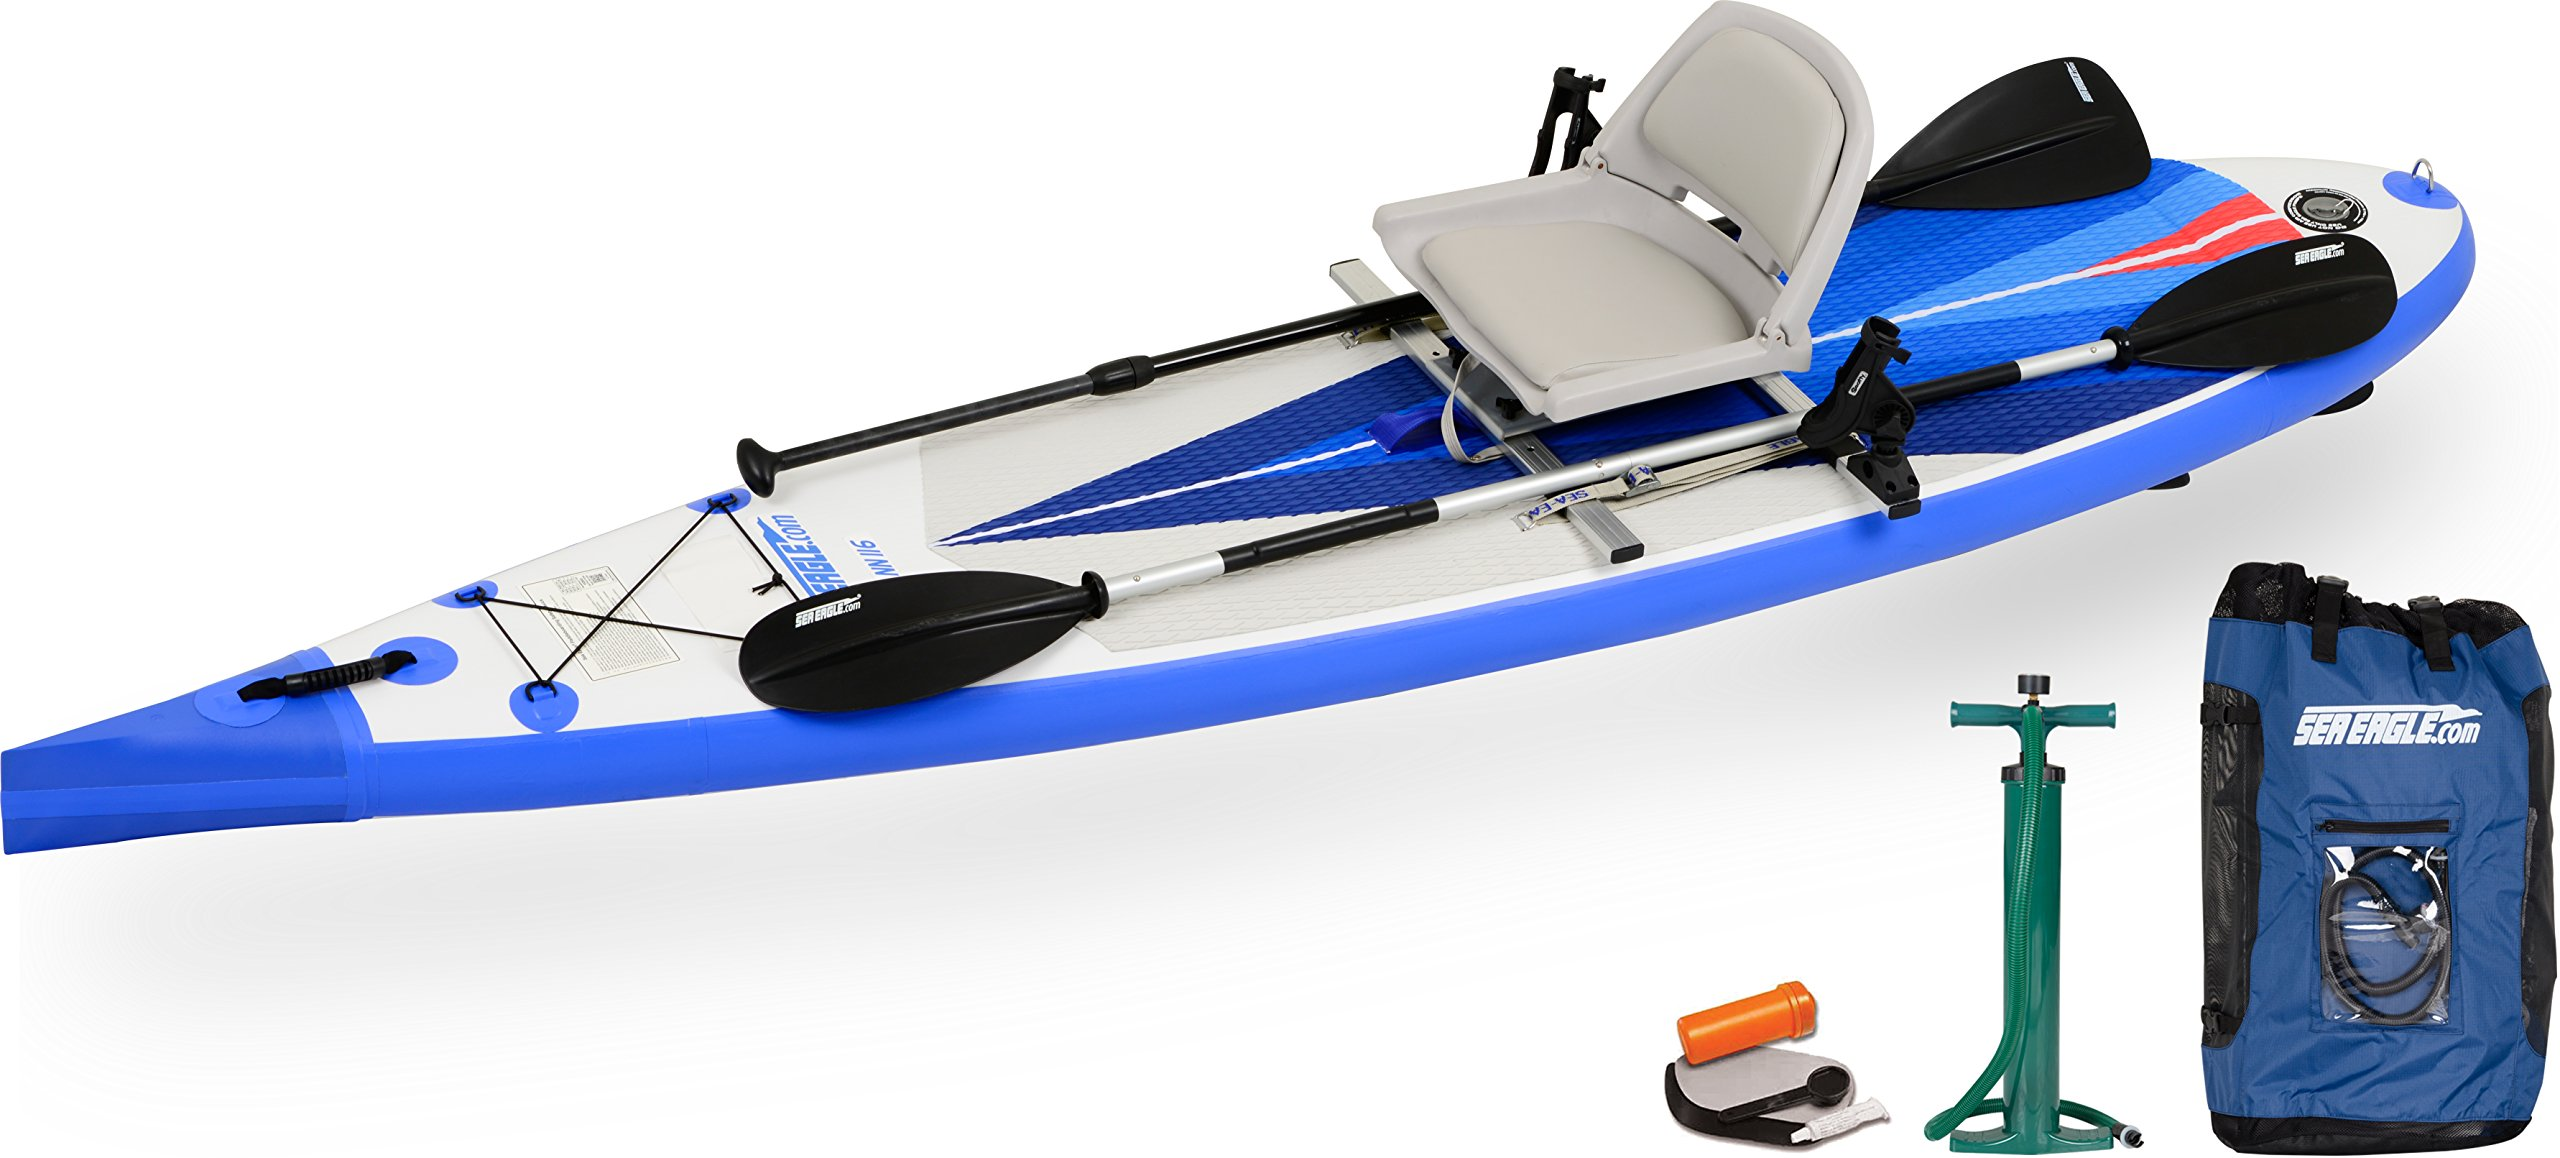 Sea Eagle NeedleNose NN116 Inflatable Touring SUP NEW Swivel Seat Fishing Rig Package by Sea Eagle